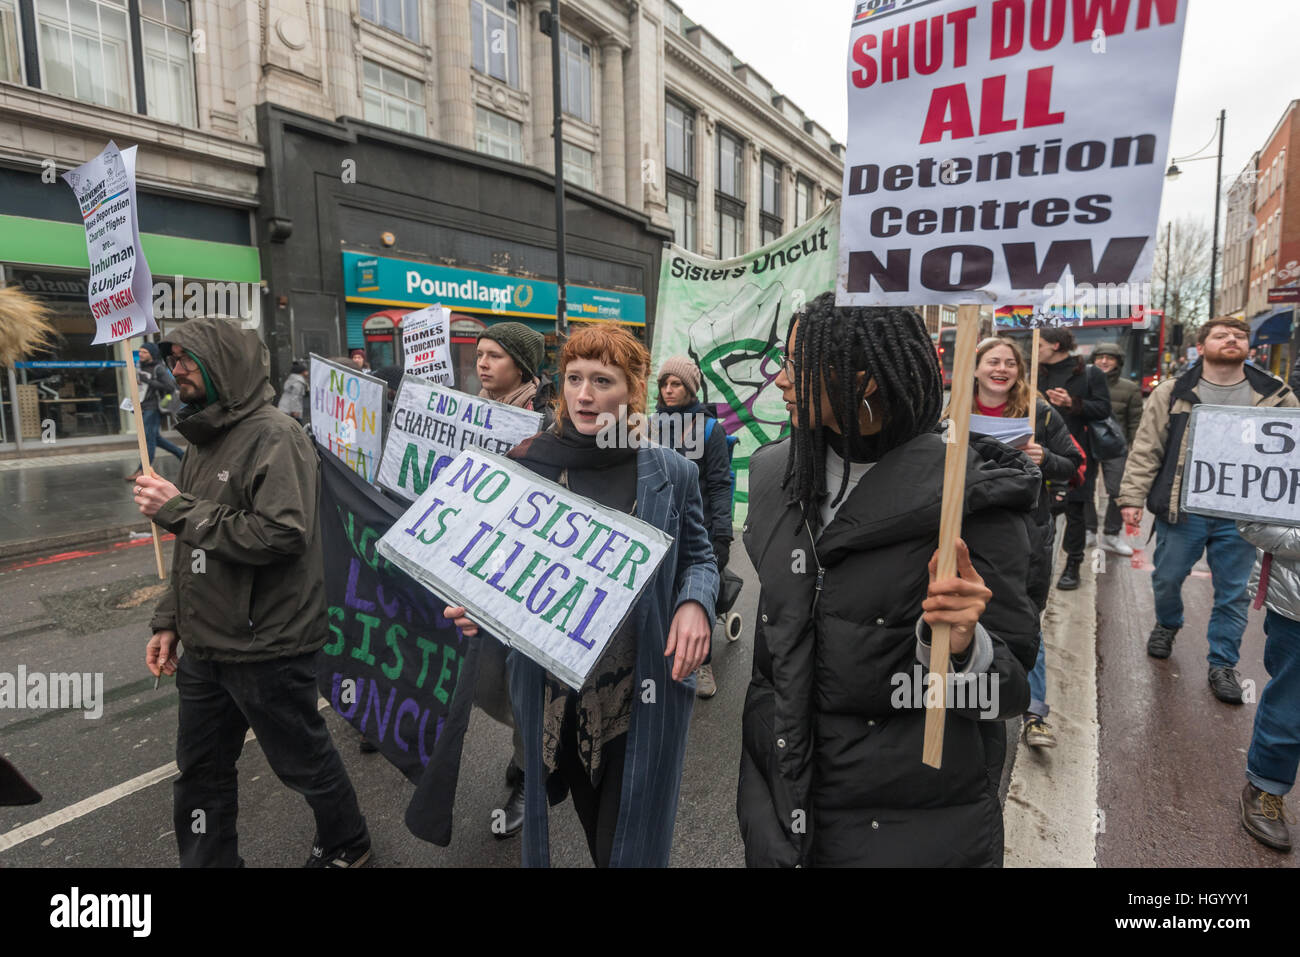 London, UK. 14th January 2017. Sisters Uncut support the Movement for Justice march through Brixton communities - Stock Image